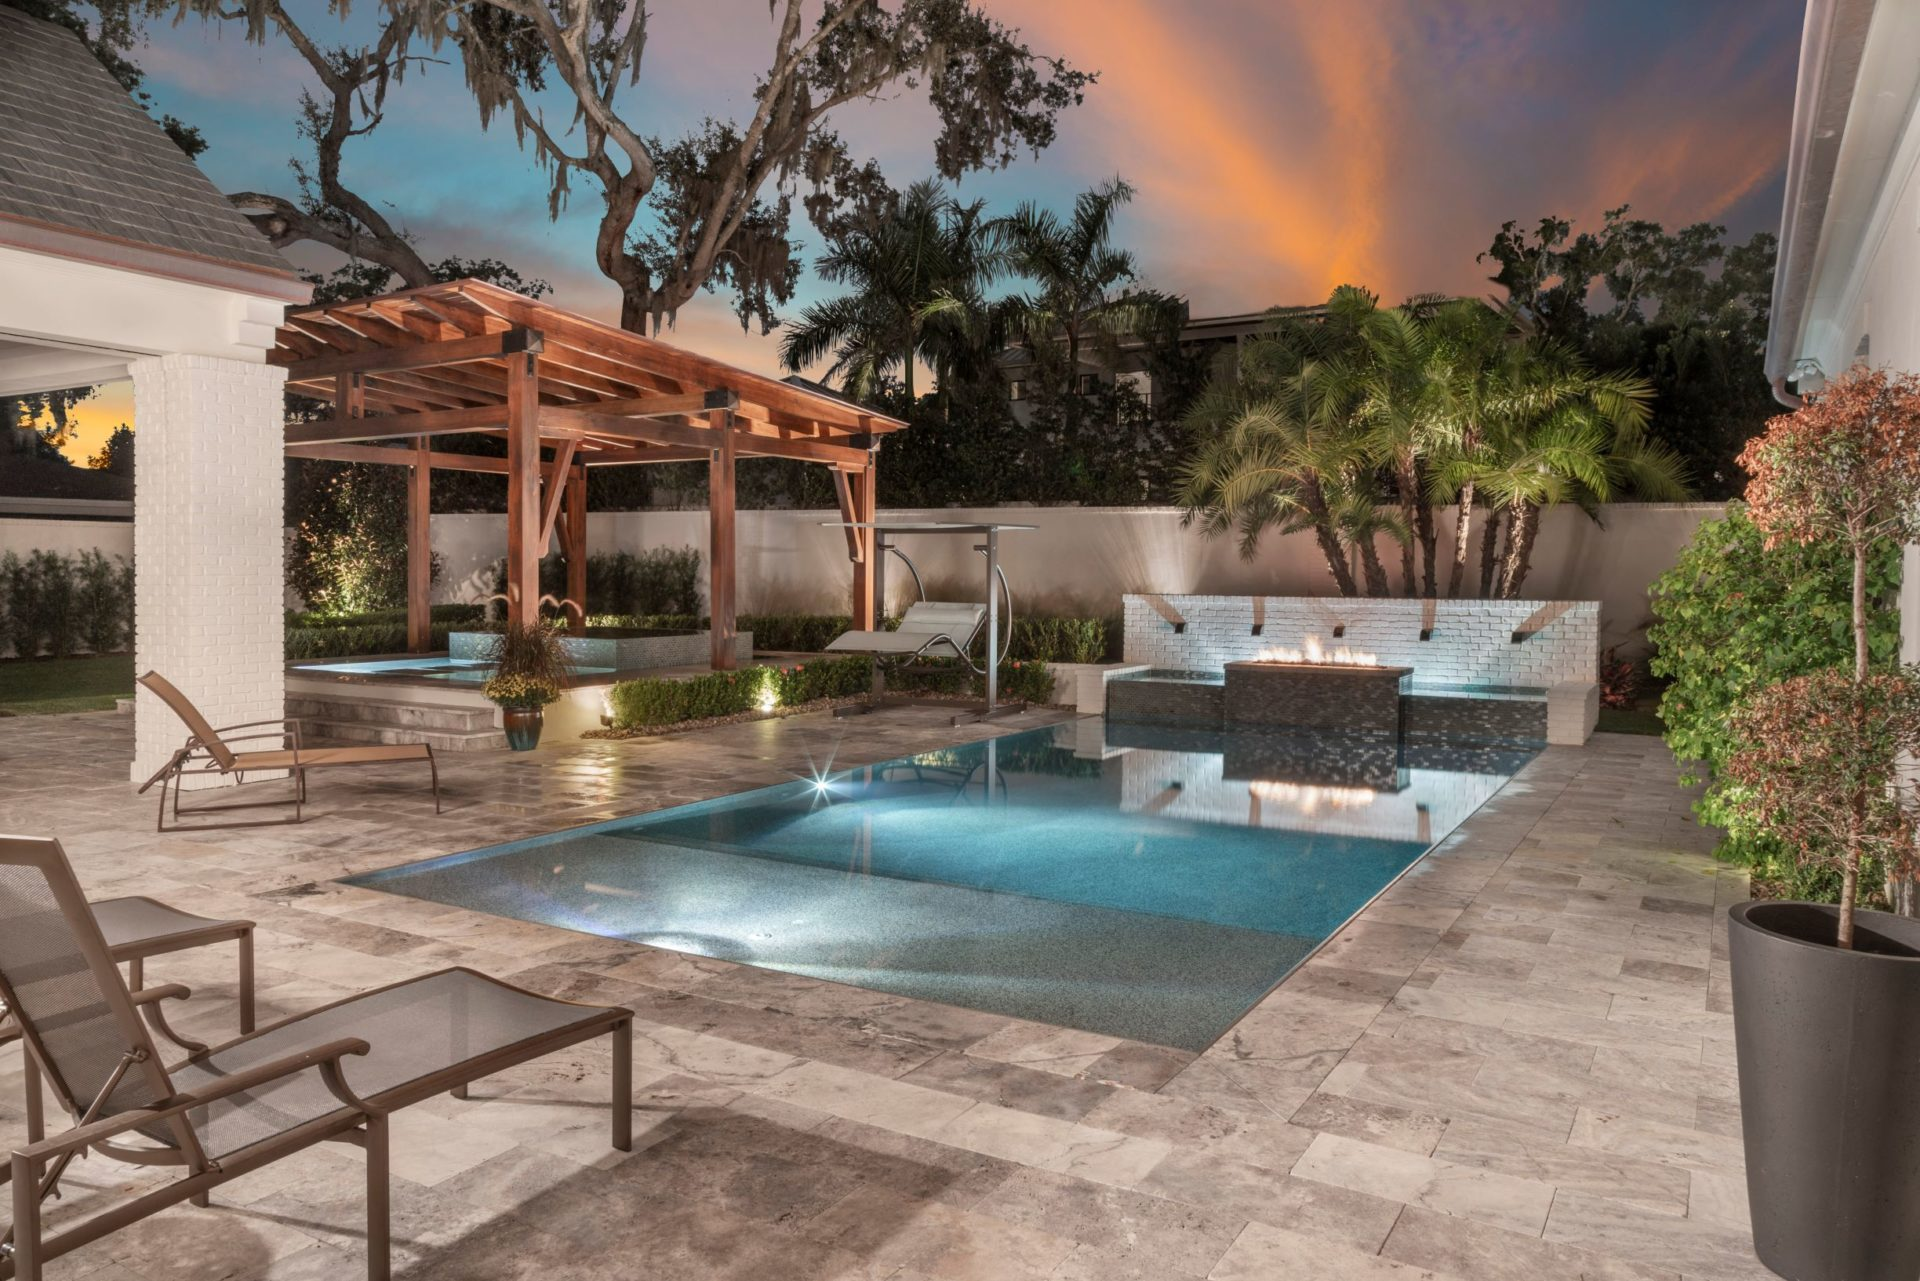 gorgeous backyard with pool designed and built by Einheit custom home builders